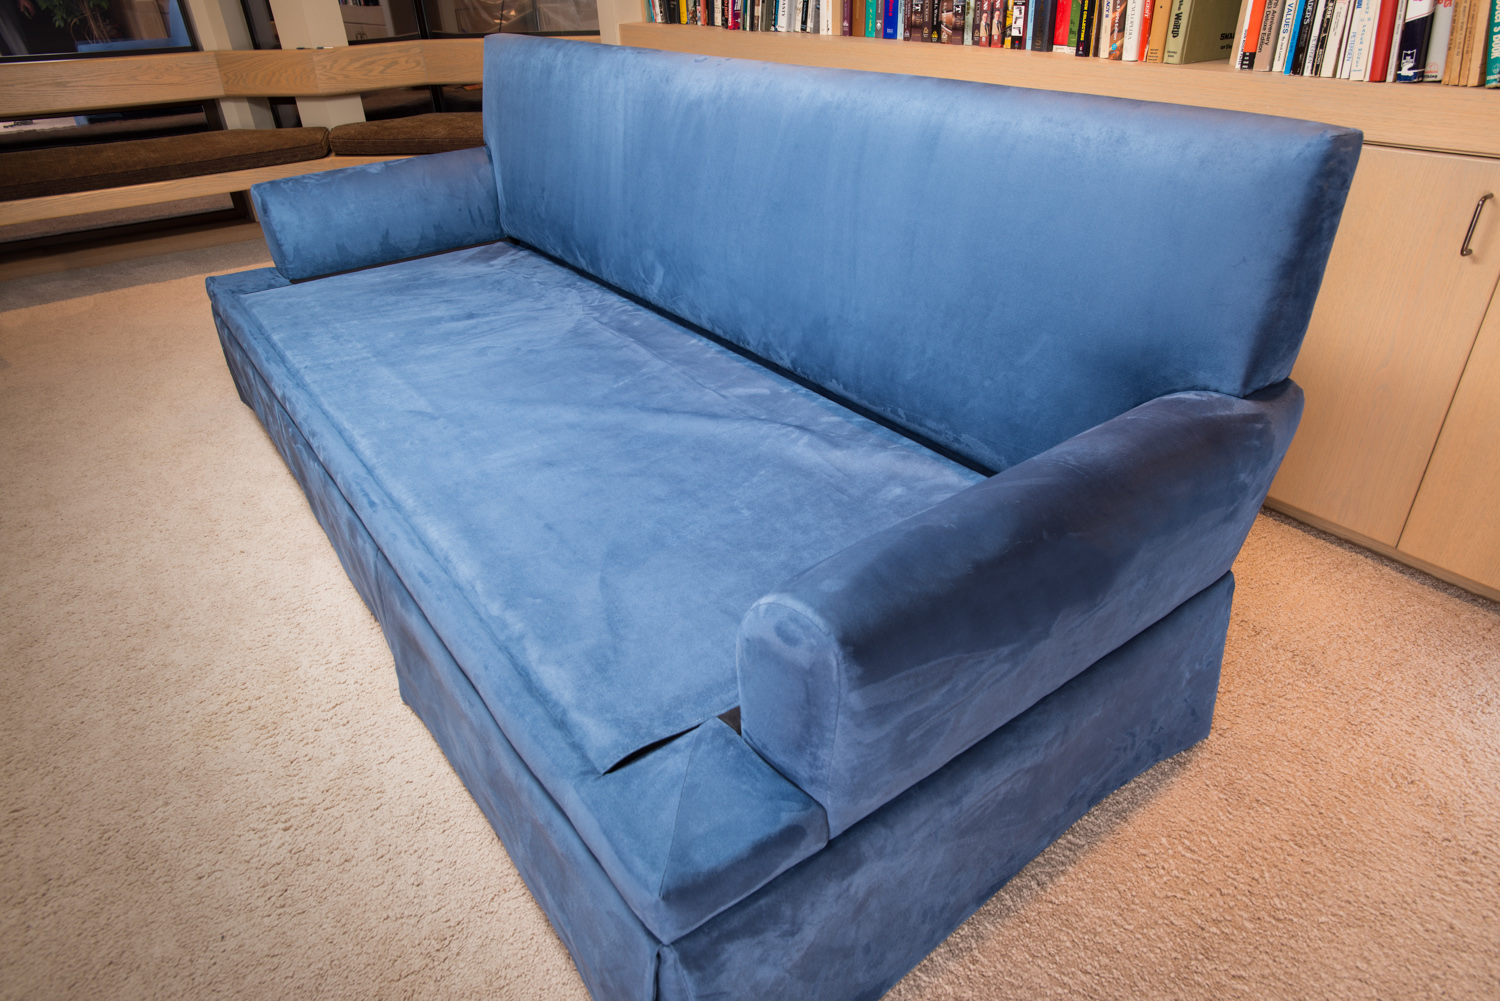 Couchbunker looking like a normal couch